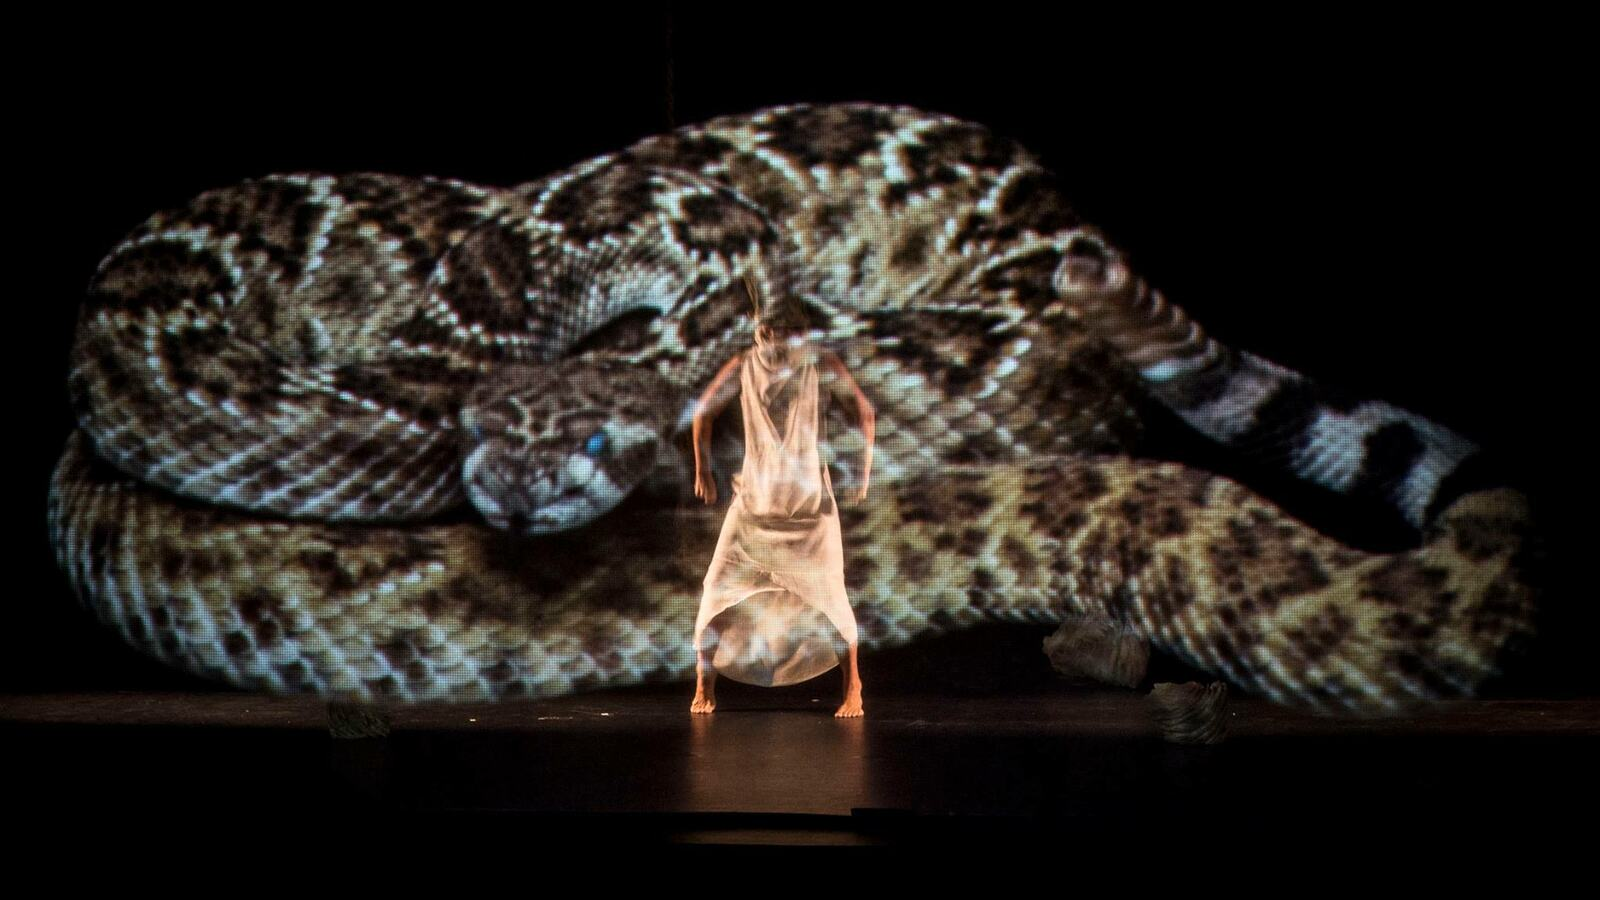 Ino Moxo, snake projected on wall while a dancer performs